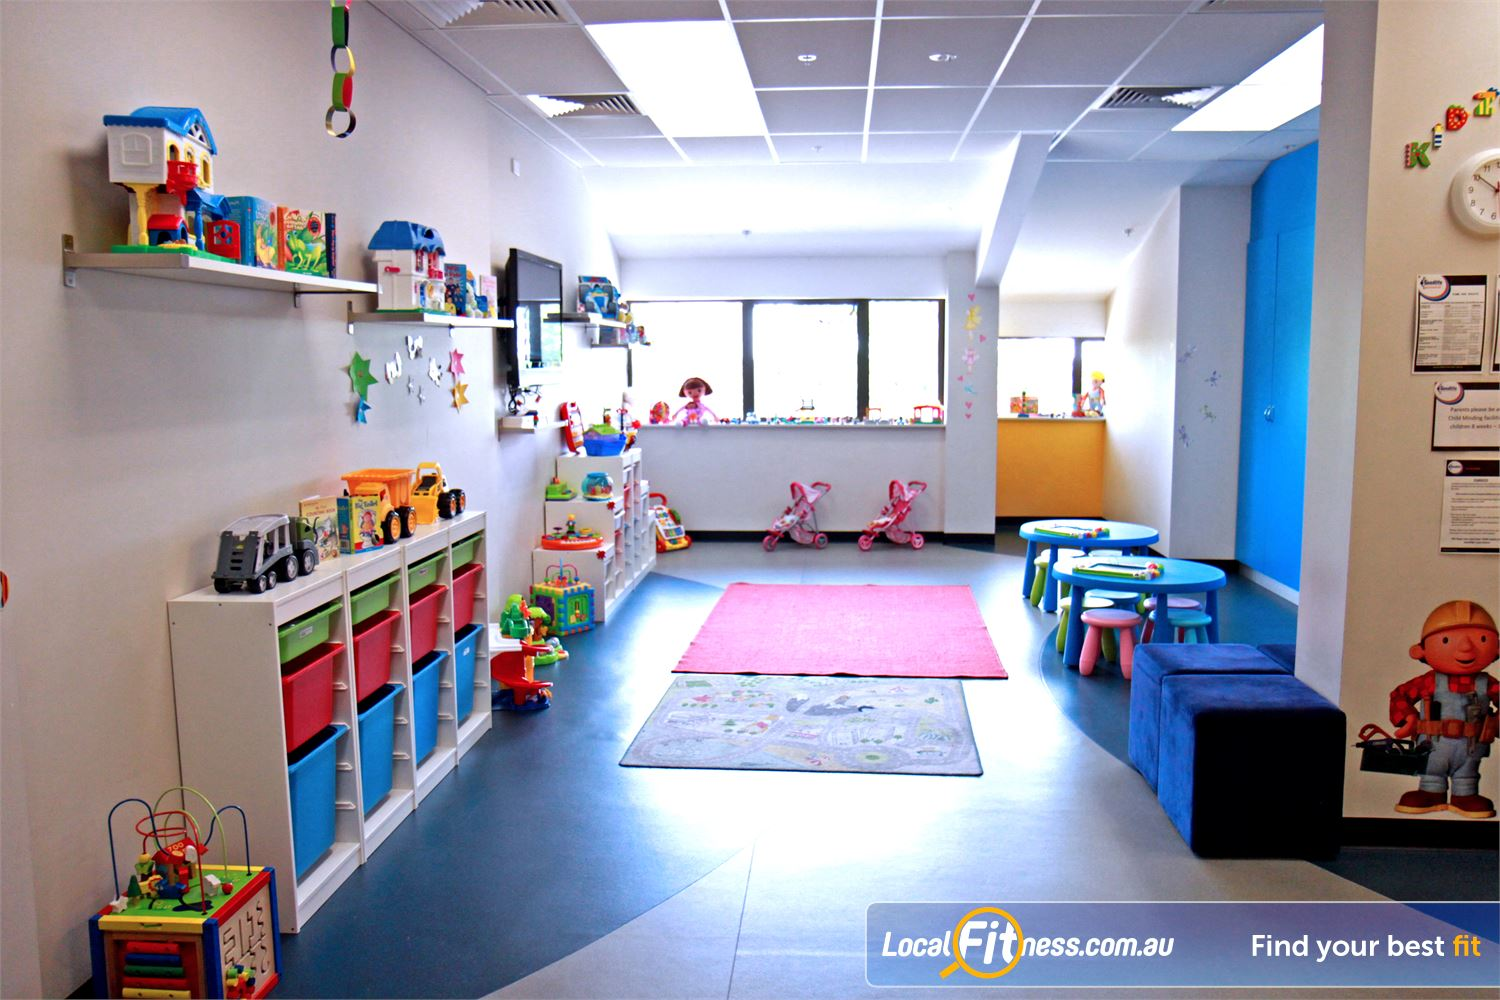 Goodlife Health Clubs Near Fitzroy Goodlife North Adelaide provides on-site child minding services.